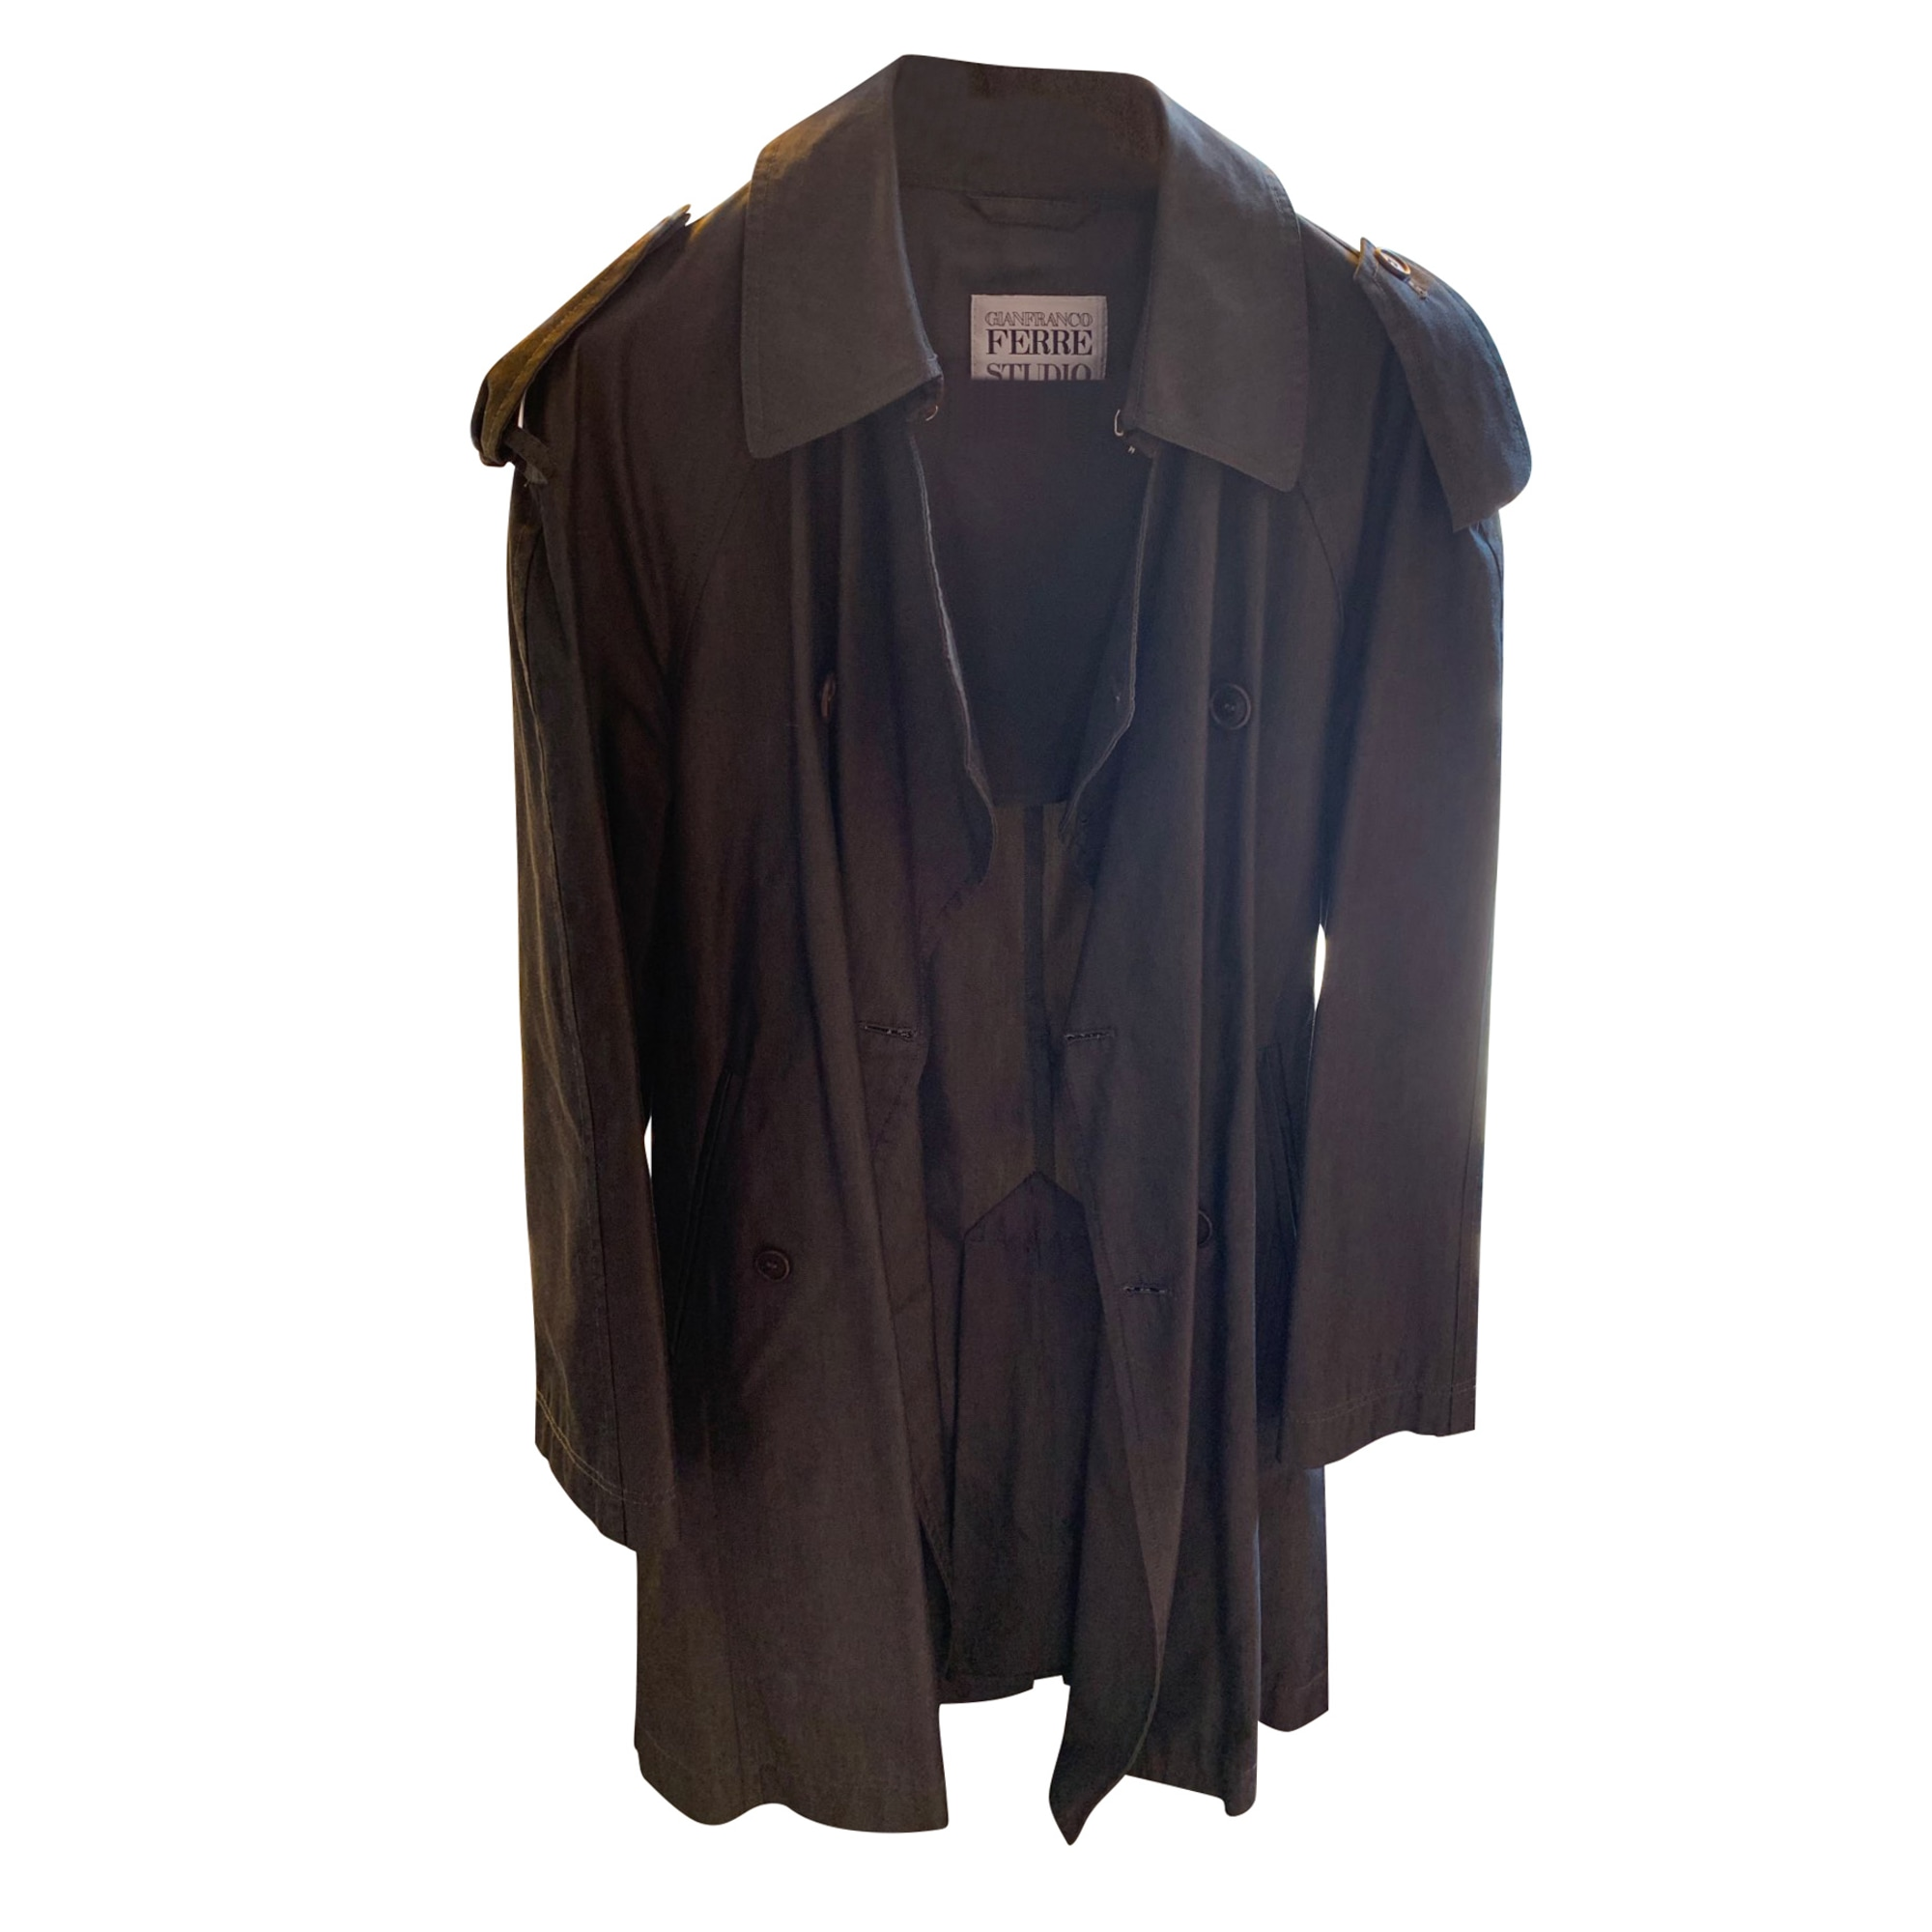 Imperméable, trench GIANFRANCO FERRE Gris, anthracite